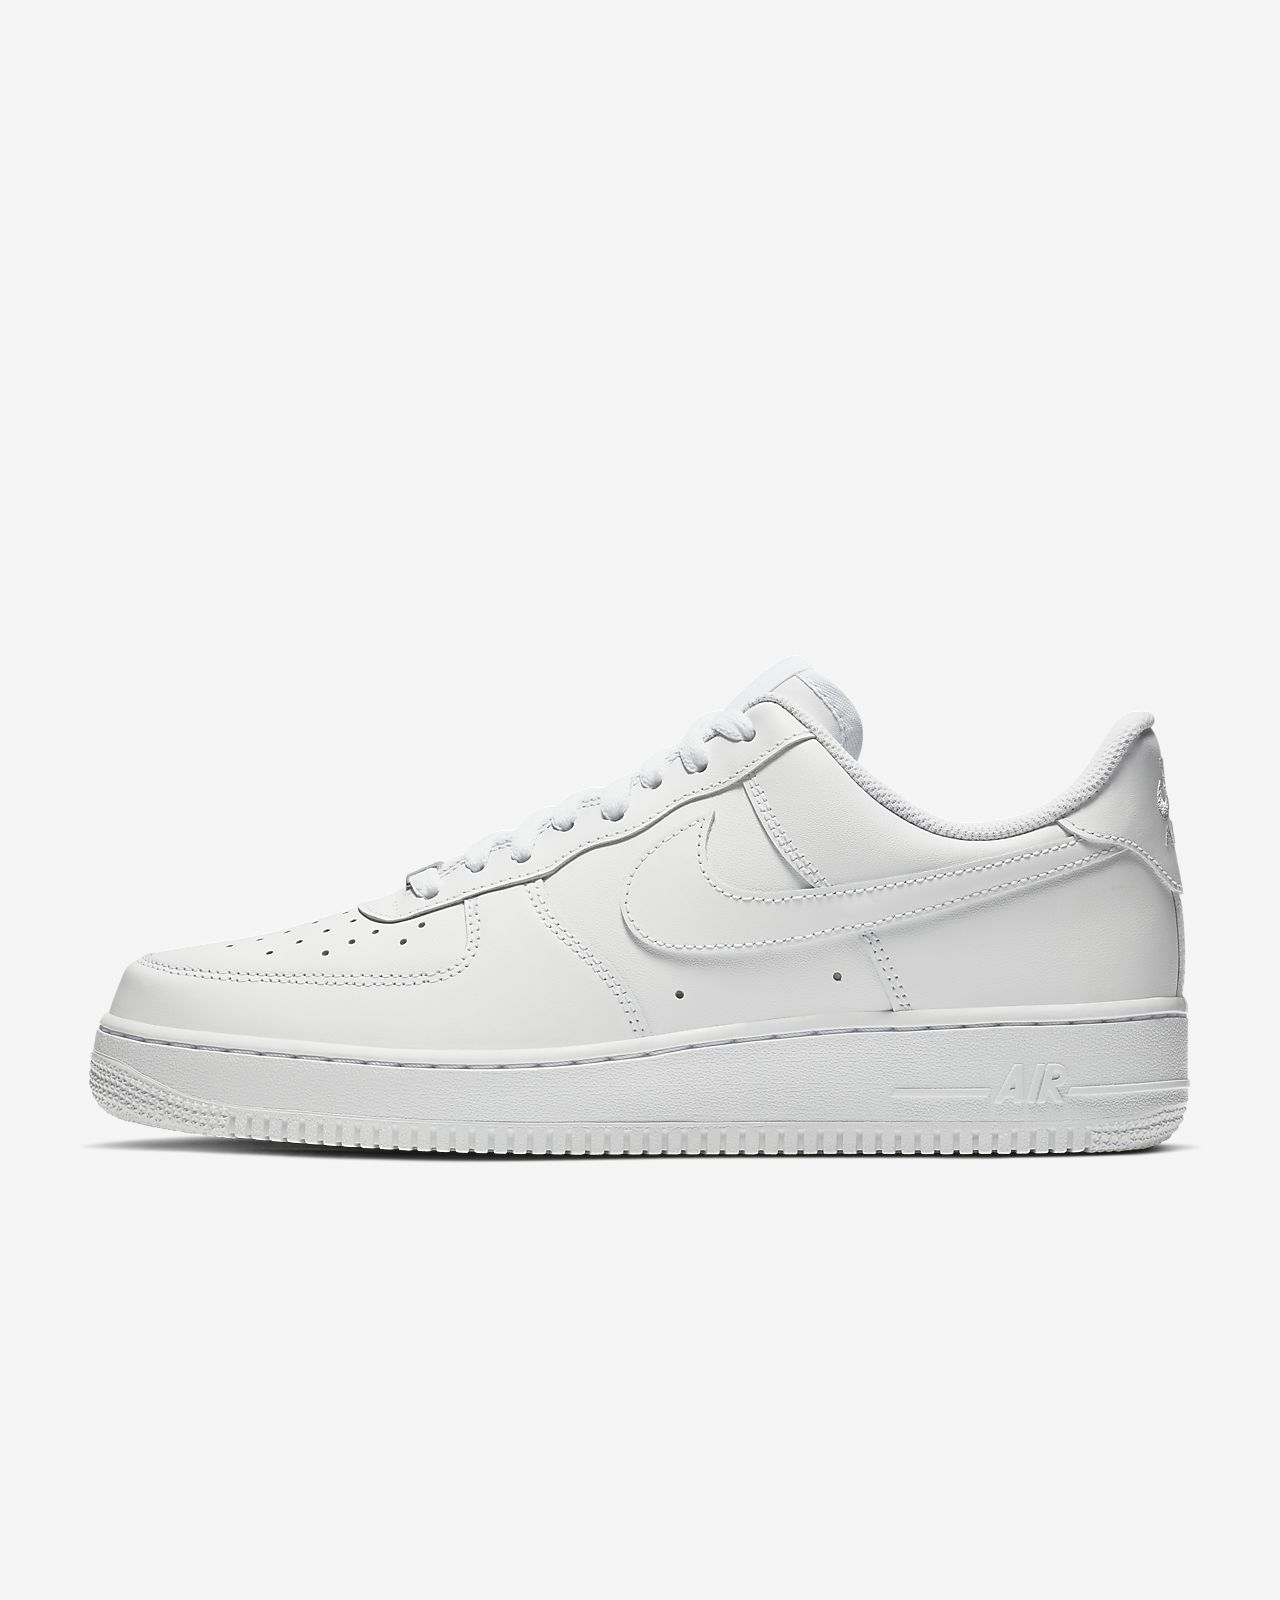 new product 21d37 a21e0 Low Resolution Nike Air Force 1  07 Shoe Nike Air Force 1  07 Shoe